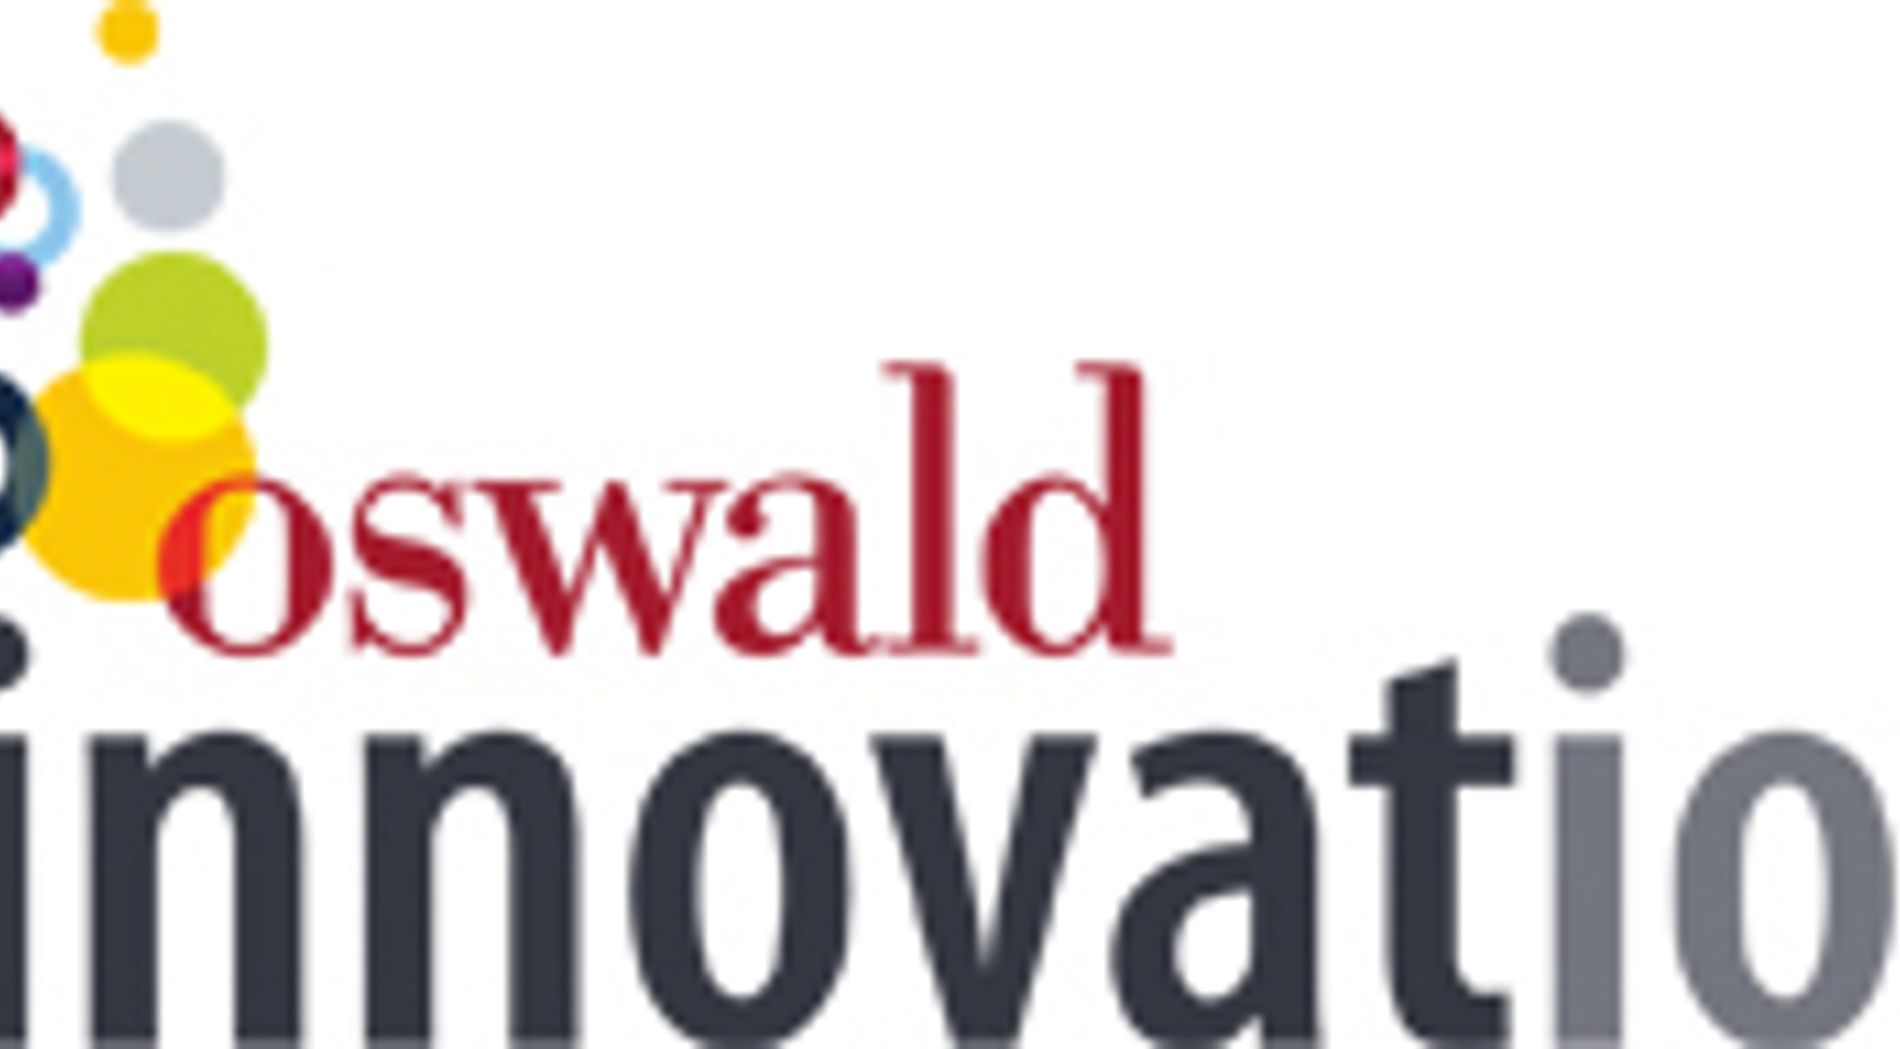 oswald innovation logo